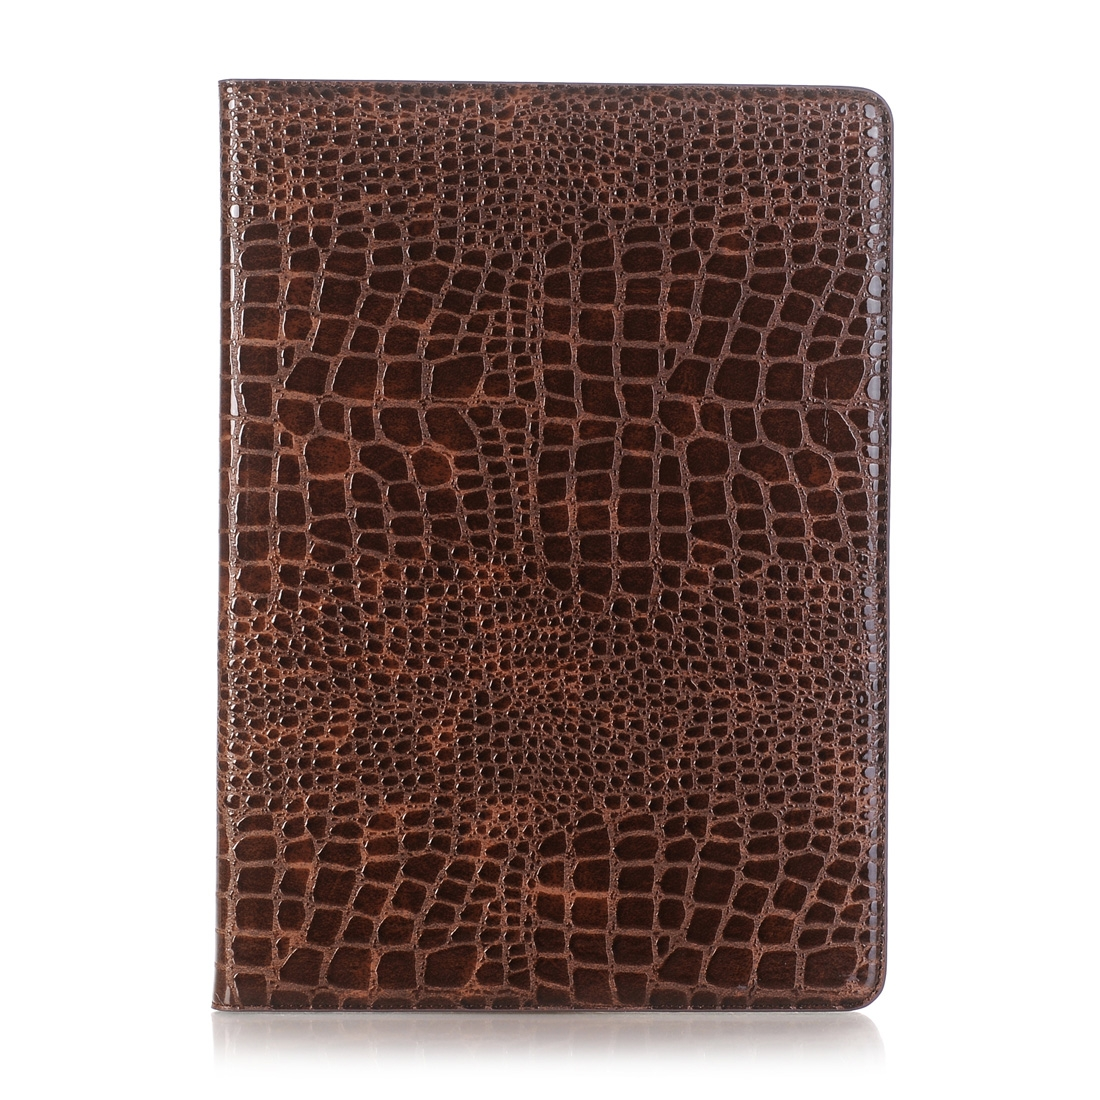 Crocodile Texture Leather Case, For iPad Air 2 Case With Slim Profile (Brown)